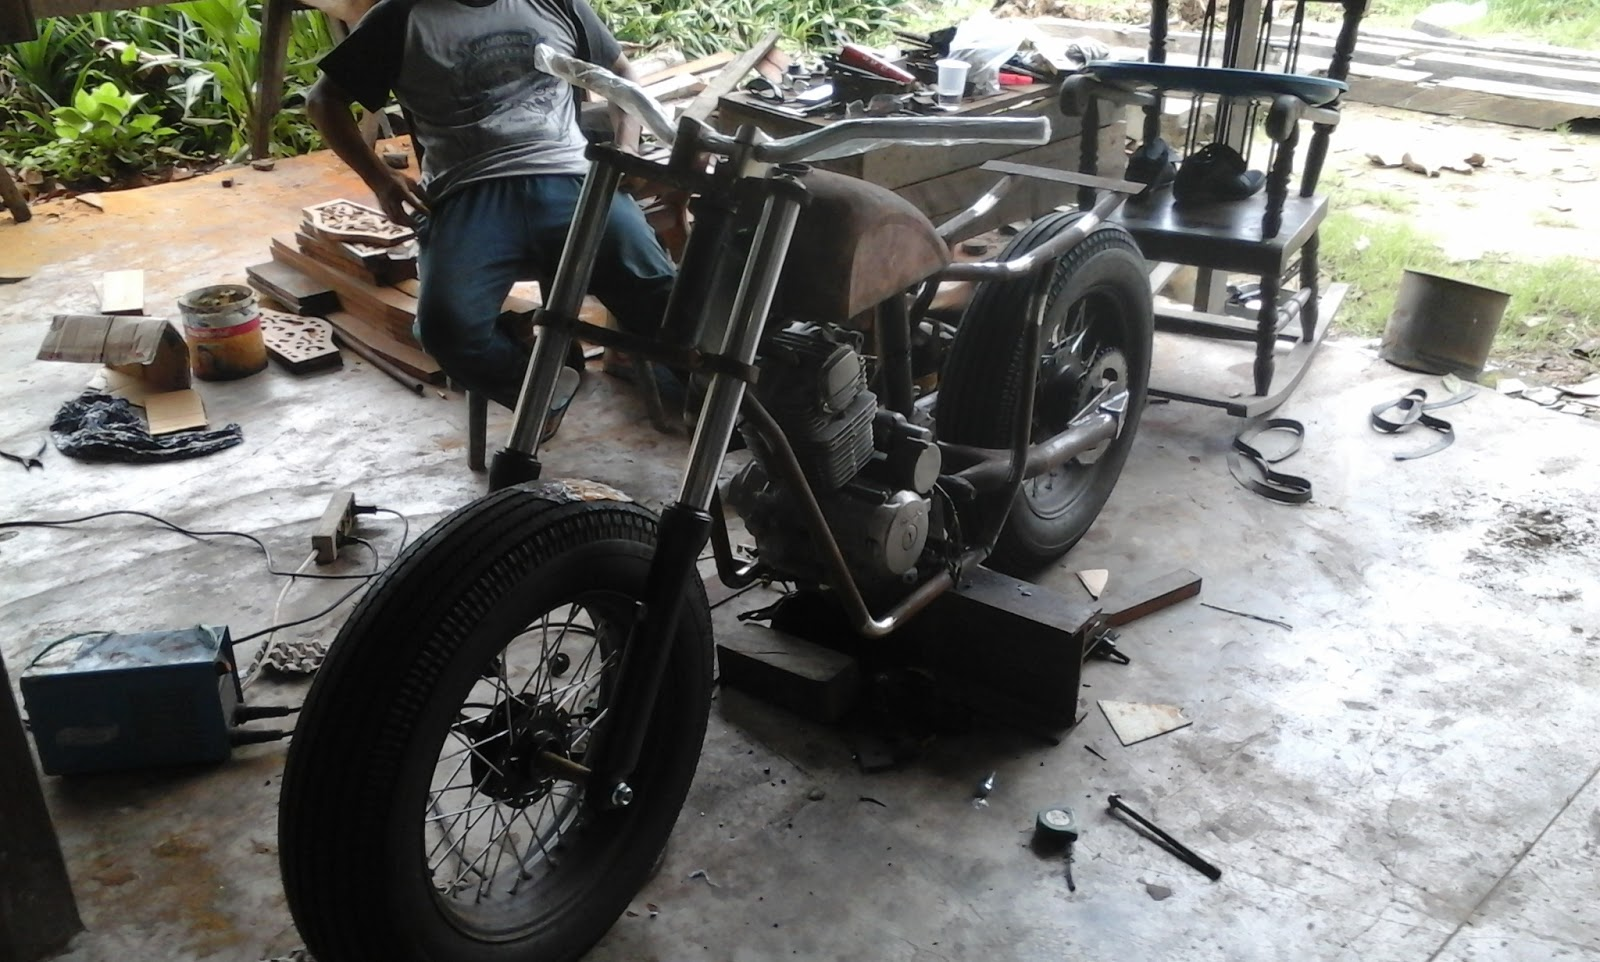 Modifikasi Motor Jadul Tiger 2000 Modifikasi Bobber